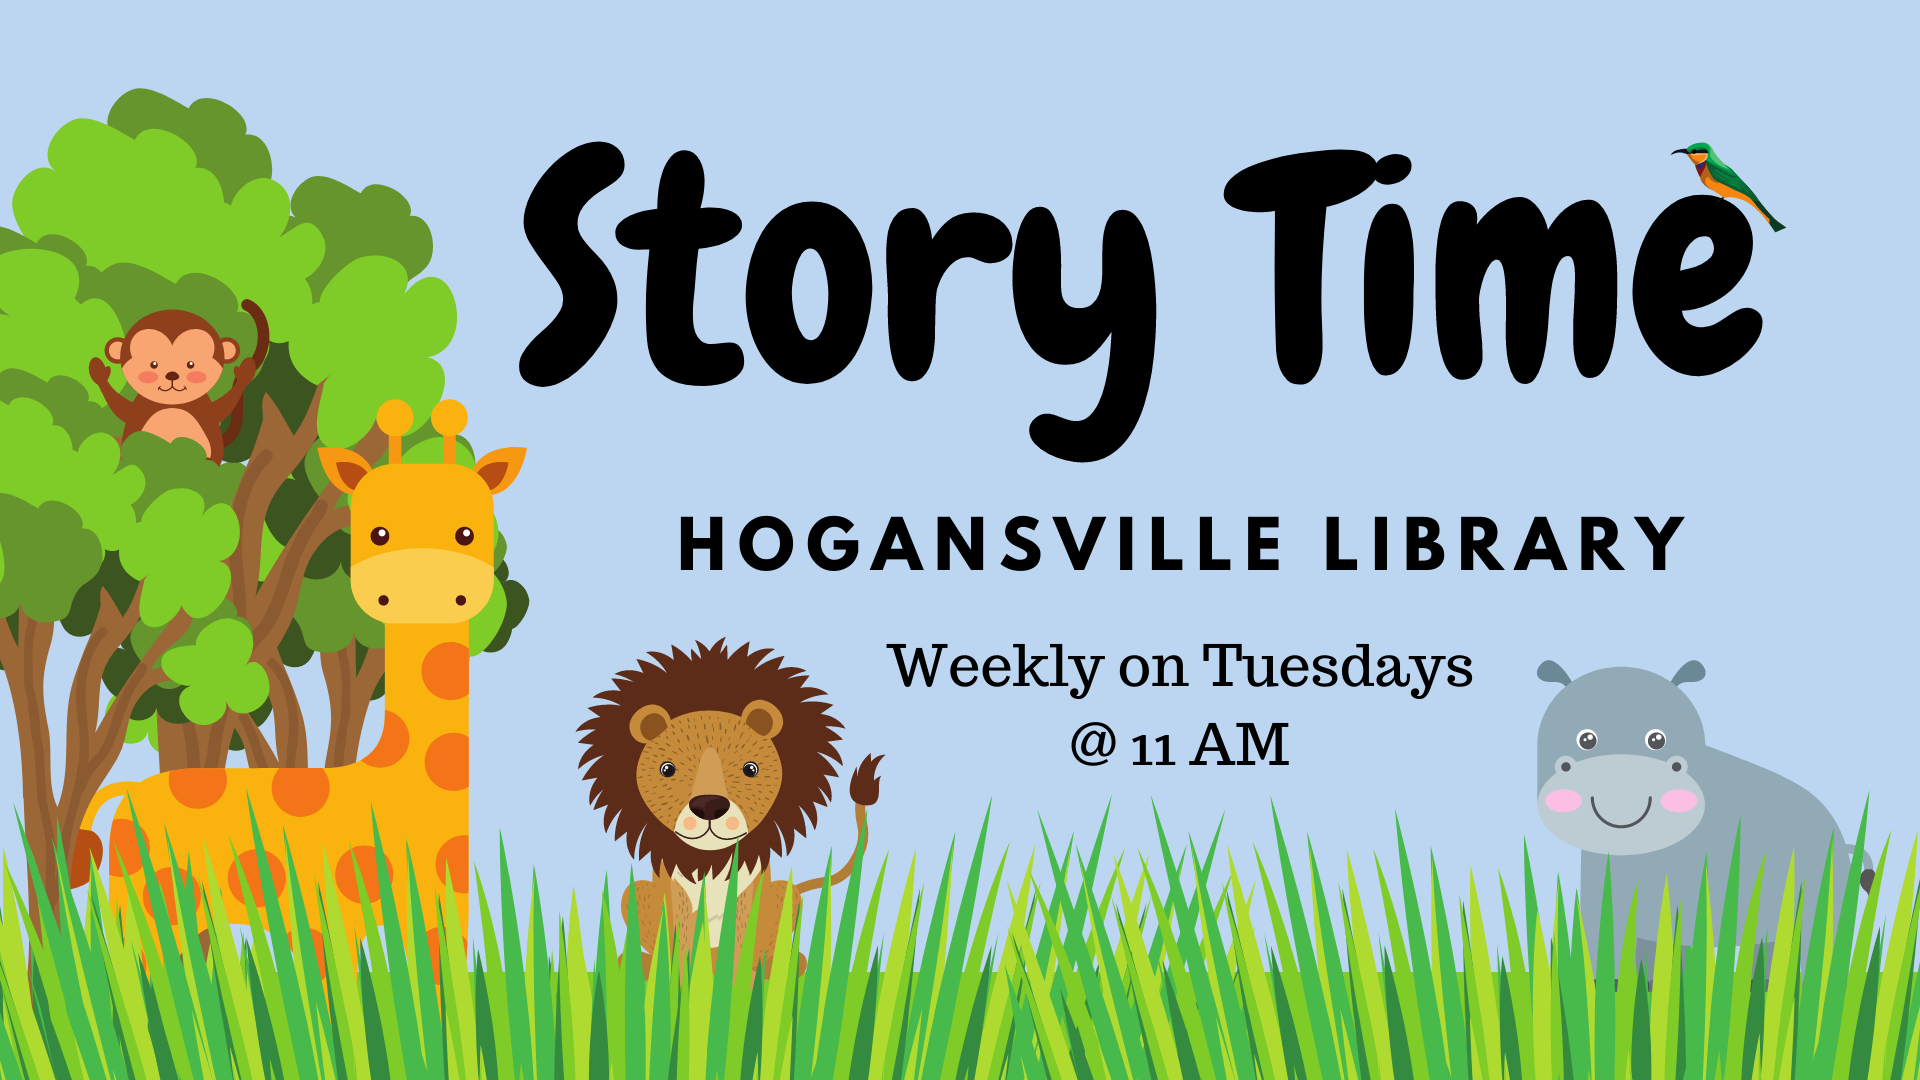 Join us every Tuesday at 11 AM at the Hogansville Public Library for stories, songs, and activities! Most appropriate for toddlers-PreK but all children are welcome. No library card/registration required.